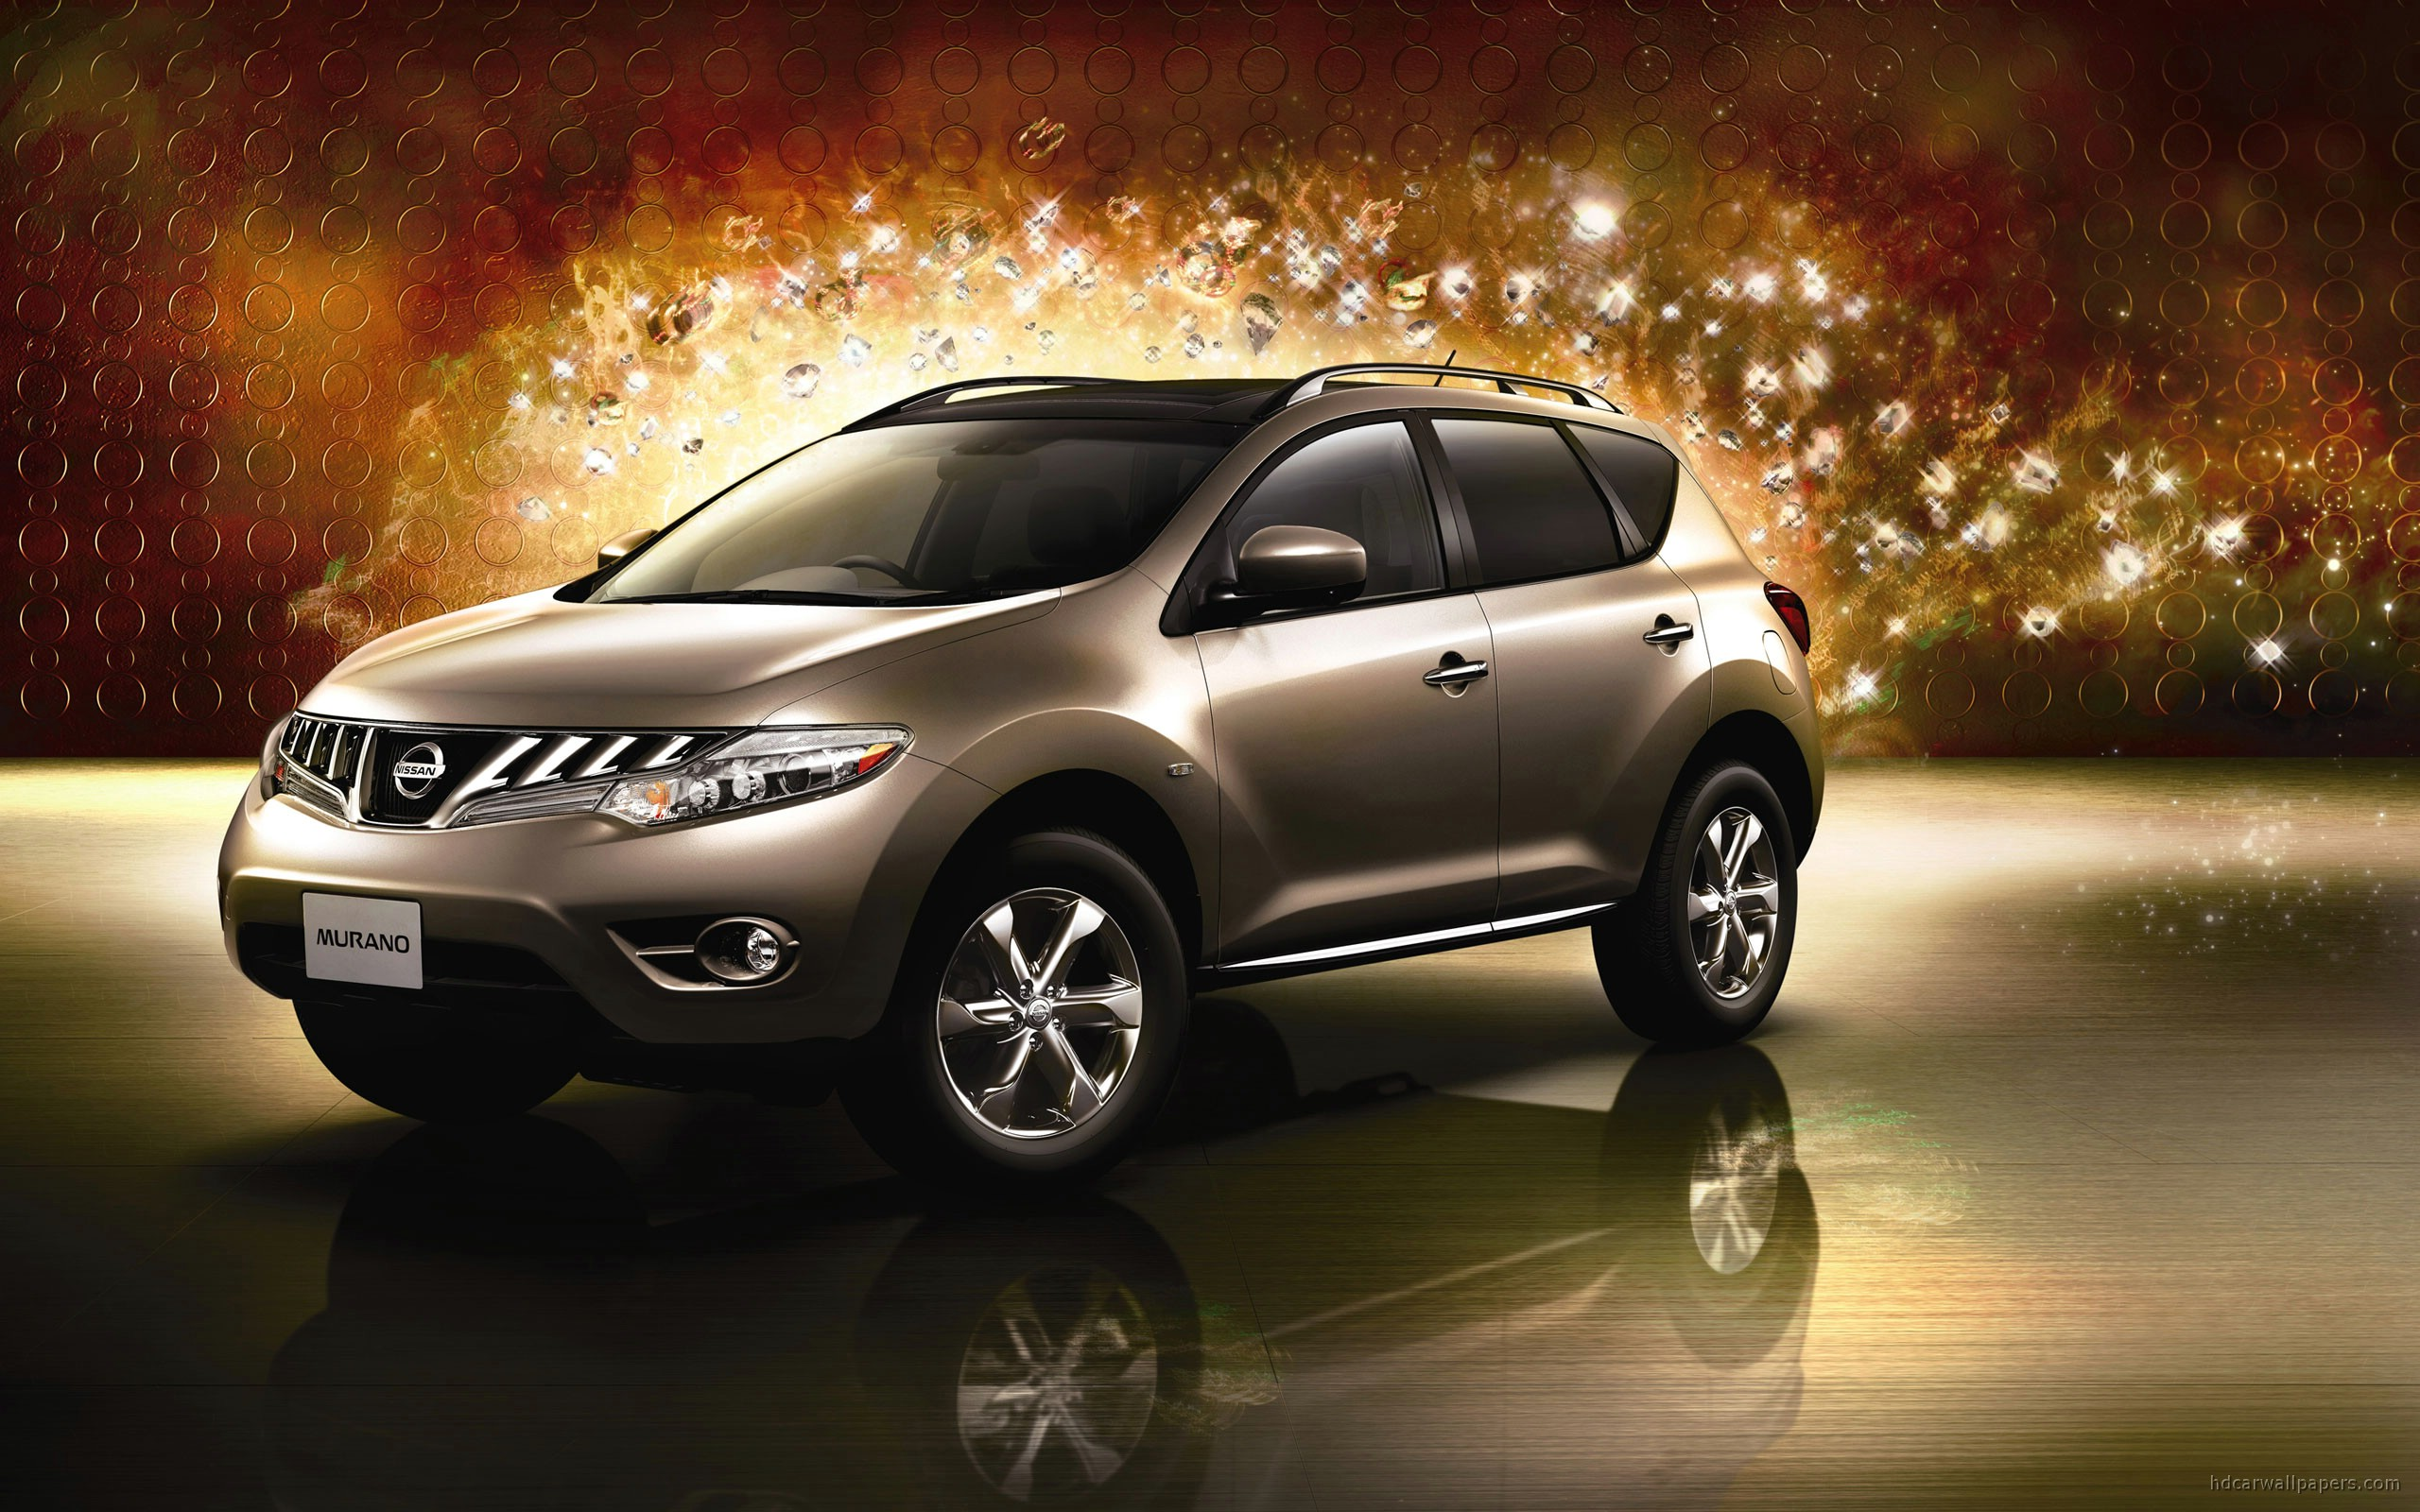 2010 Nissan Murano Wallpaper Cars Hd Desktop Wallpapers